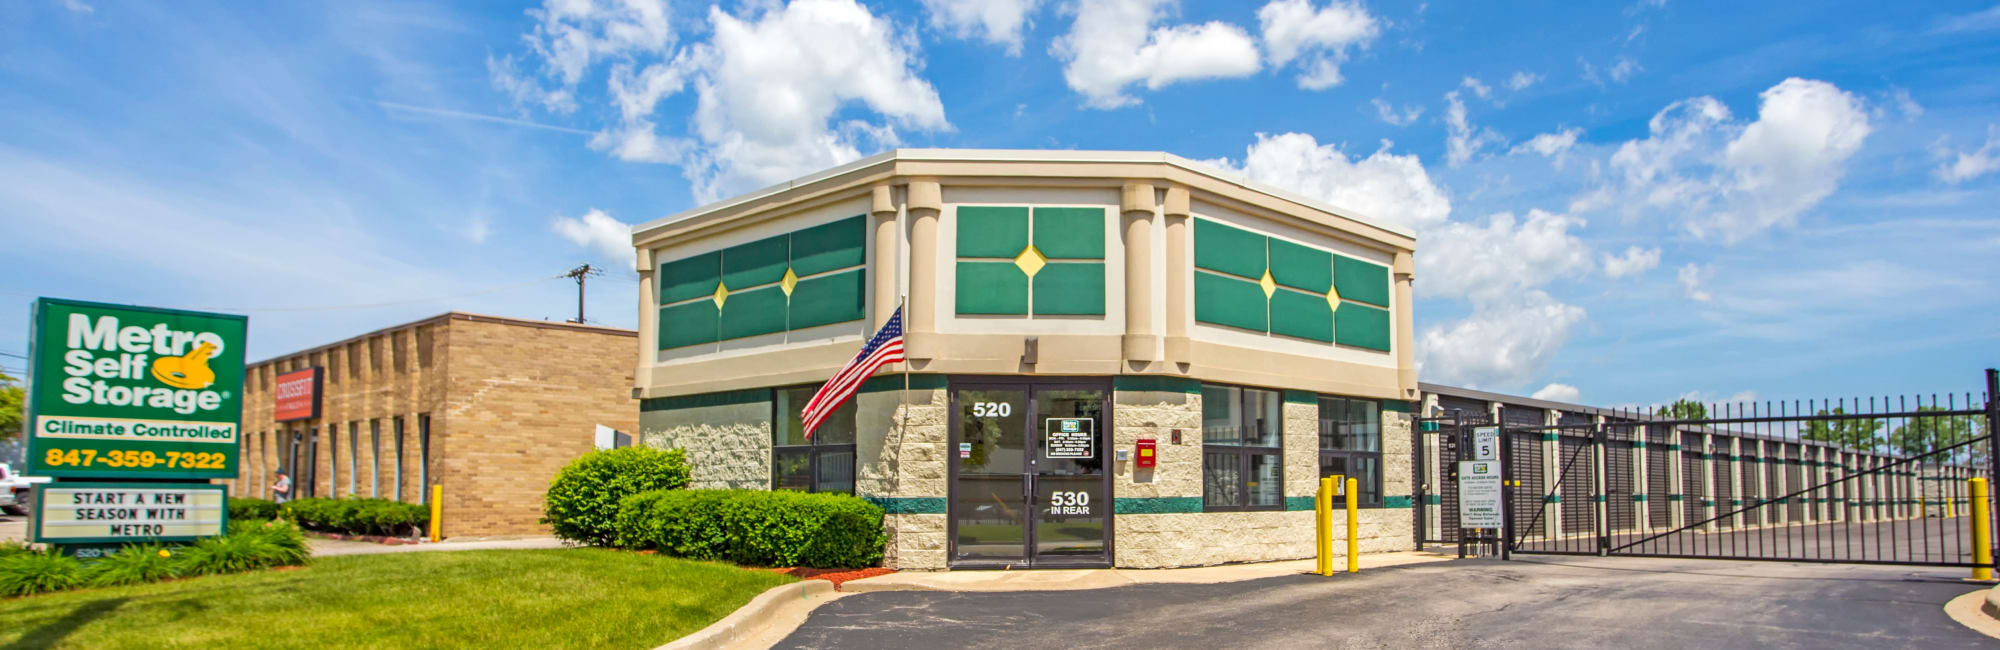 Metro Self Storage In Palatine Il